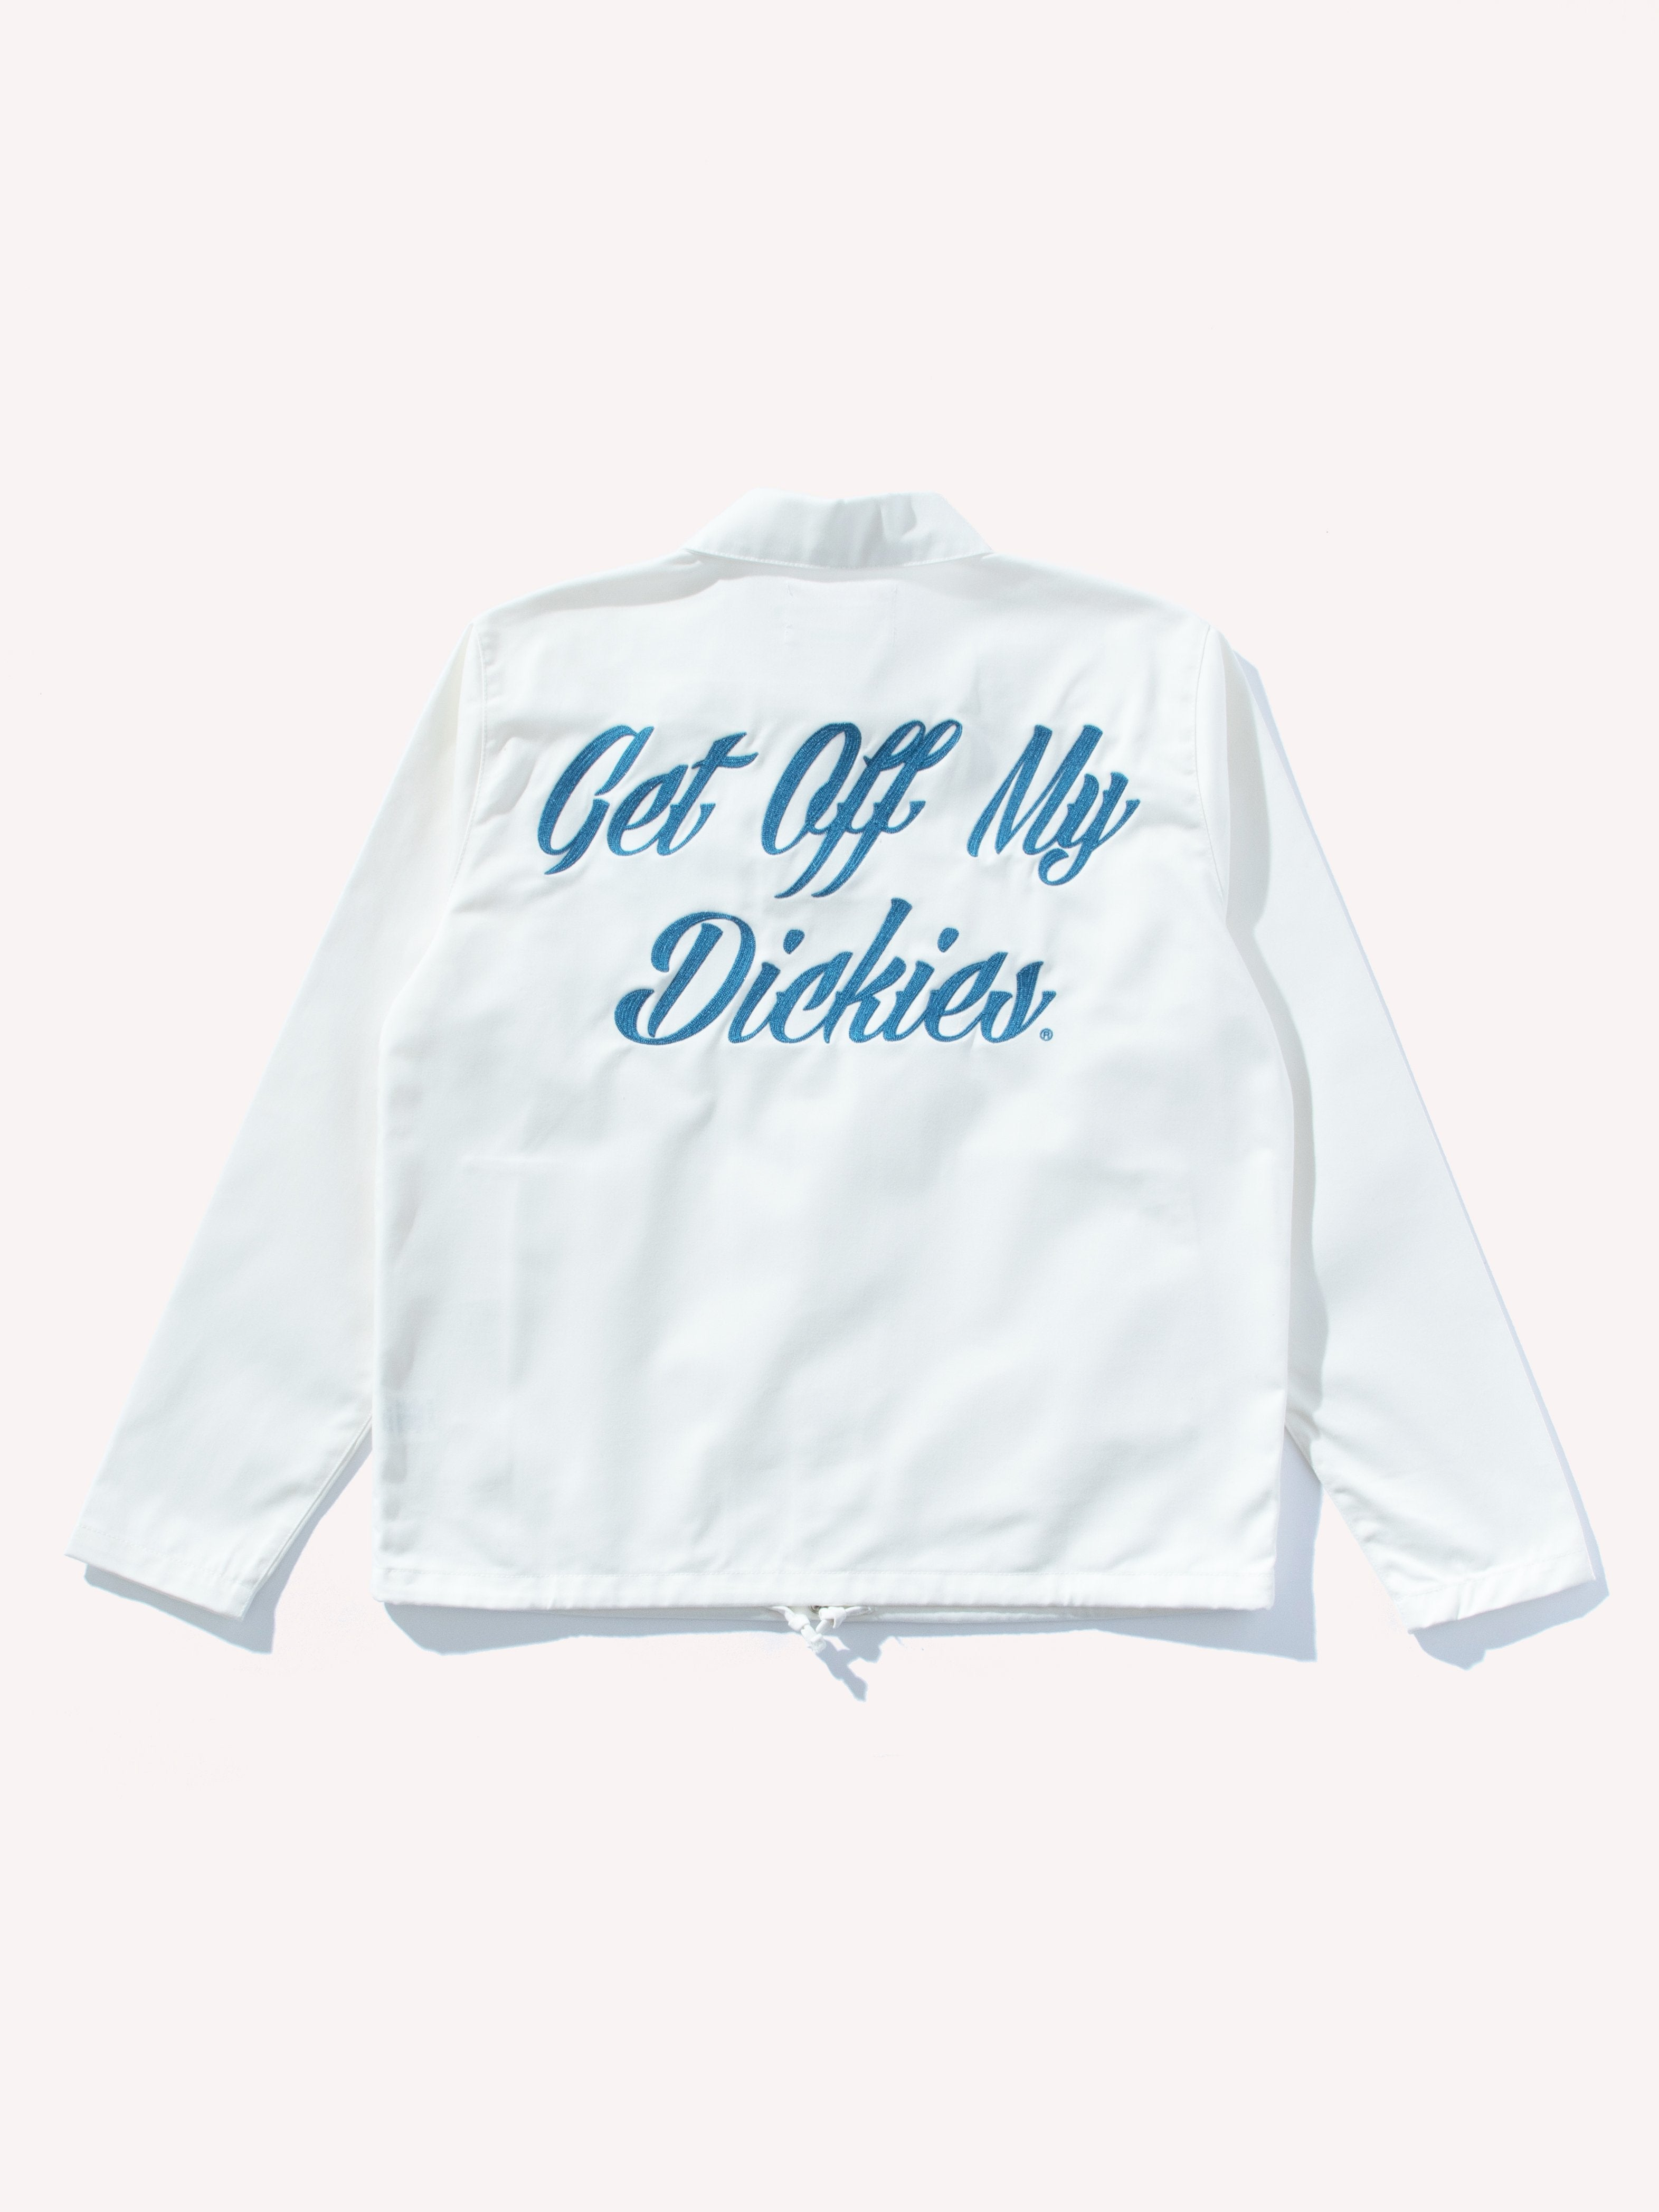 Get Off My Coaches Jacket (Dickies x UNION)